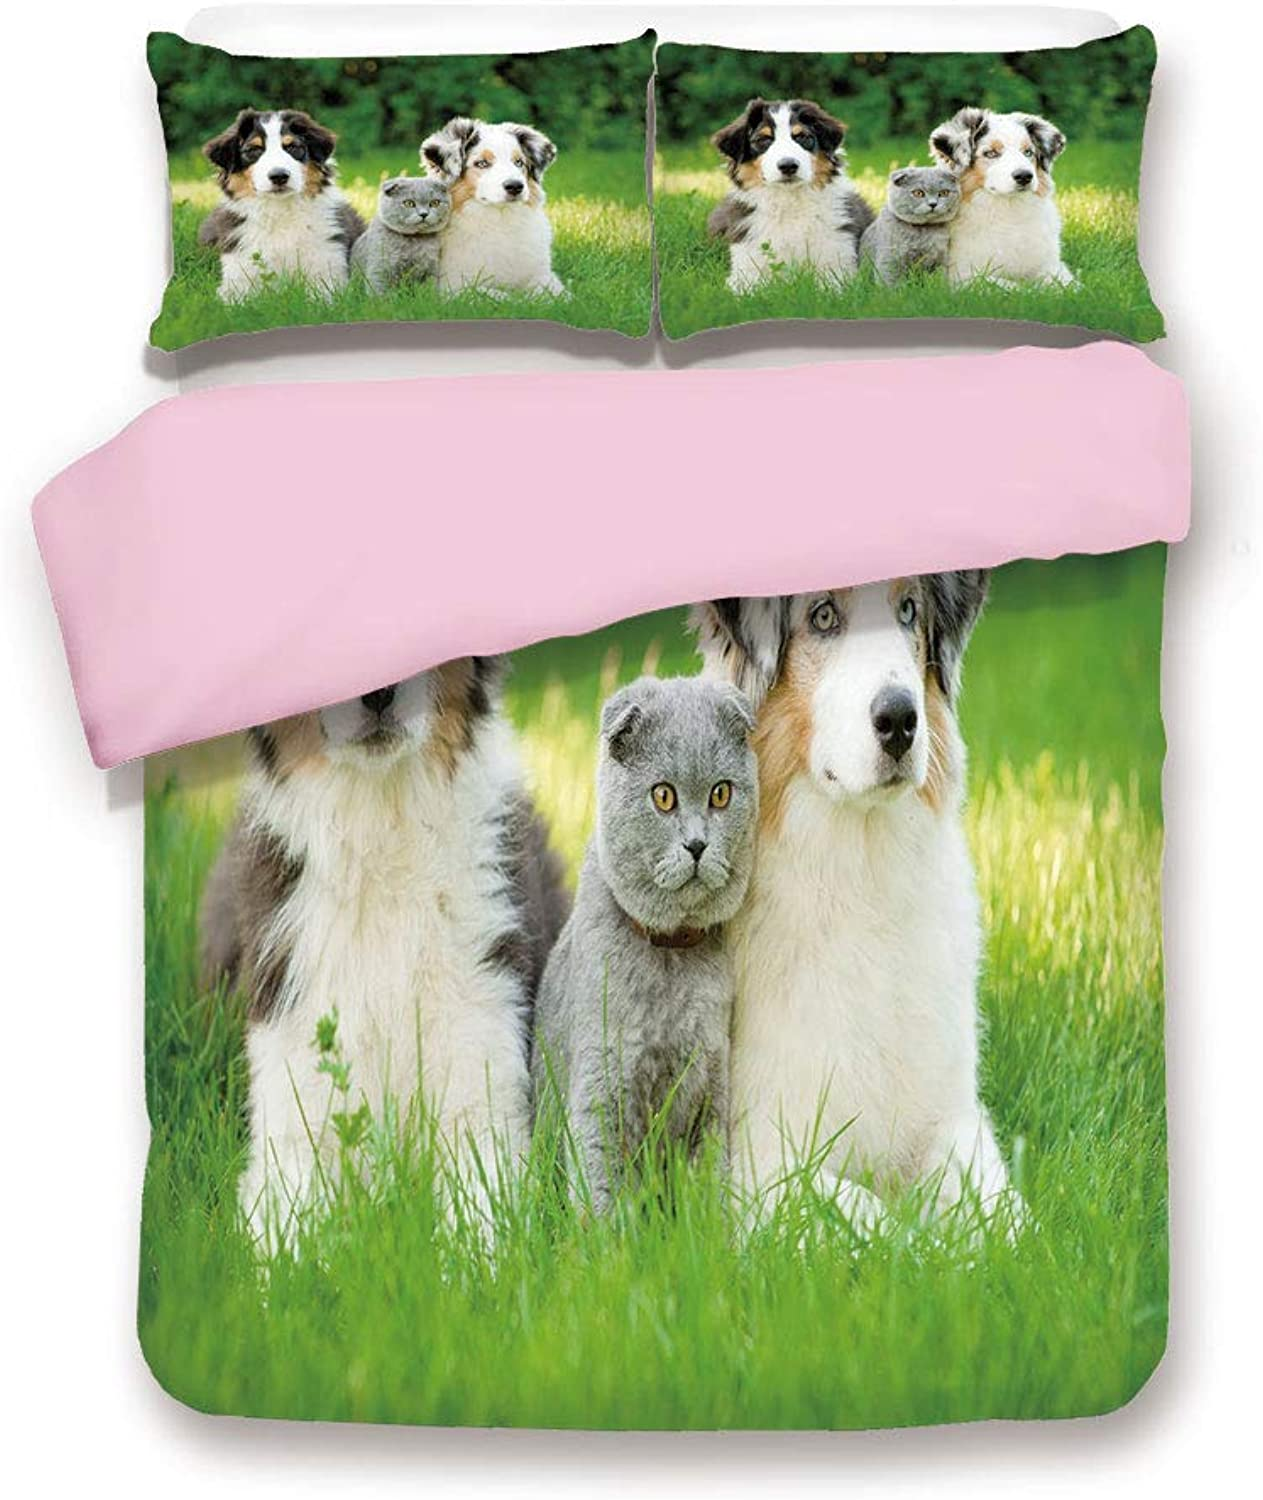 Pink Duvet Cover Set,Queen Size,Cute Pets Puppy Family in the Garden Australian Shepherds and A Cat Scenery Decorative,Decorative 3 Piece Bedding Set with 2 Pillow Sham,Best Gift For Girls Women,Cream